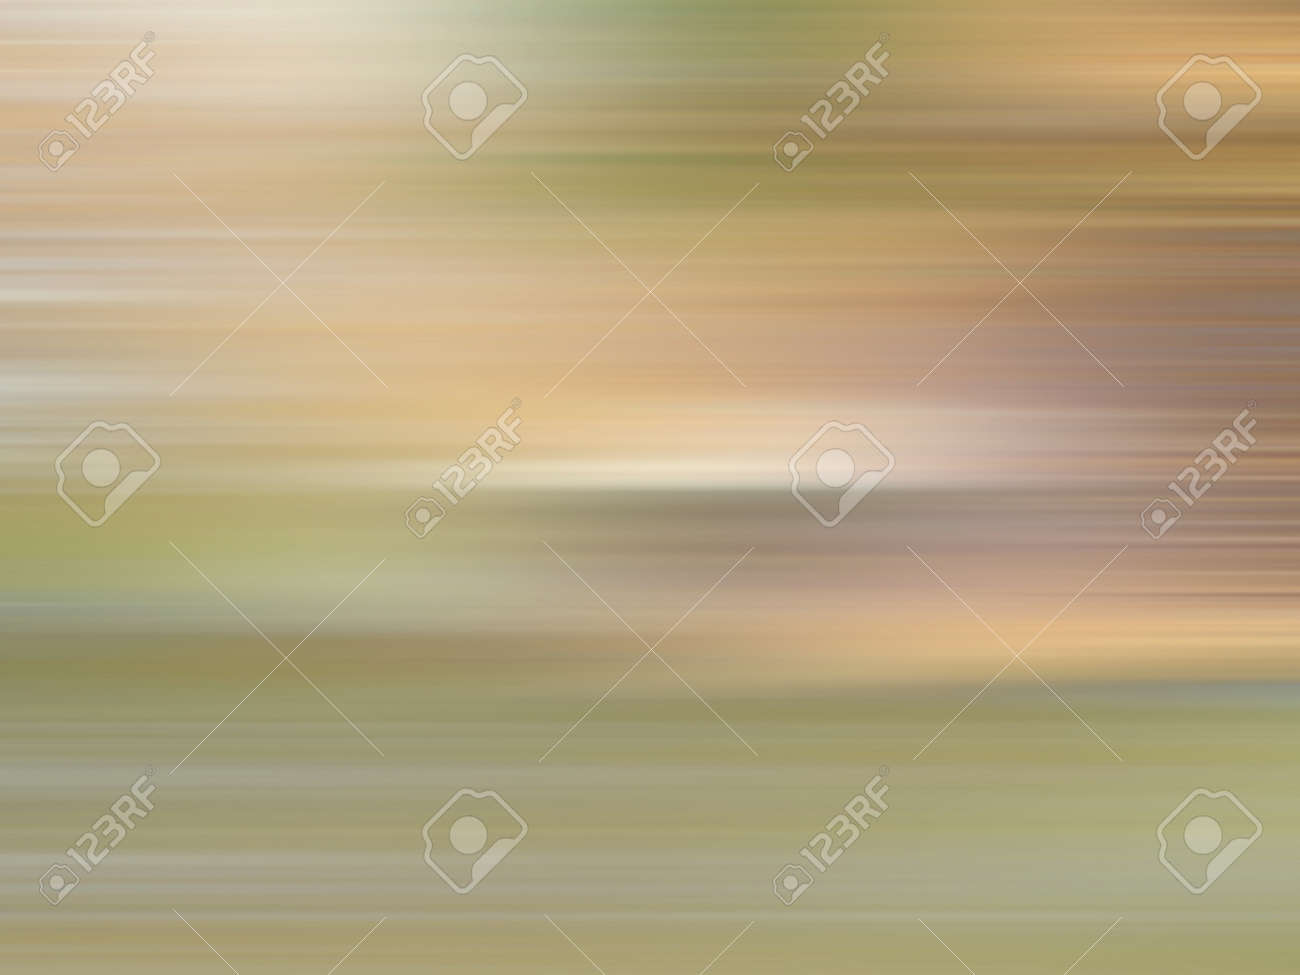 Soft brown, beige, green blurred strips. Multicolored smooth gradient. Ground and grass concept. Speed lines. Defocused background. Abstract design. Textured surface - 168809988